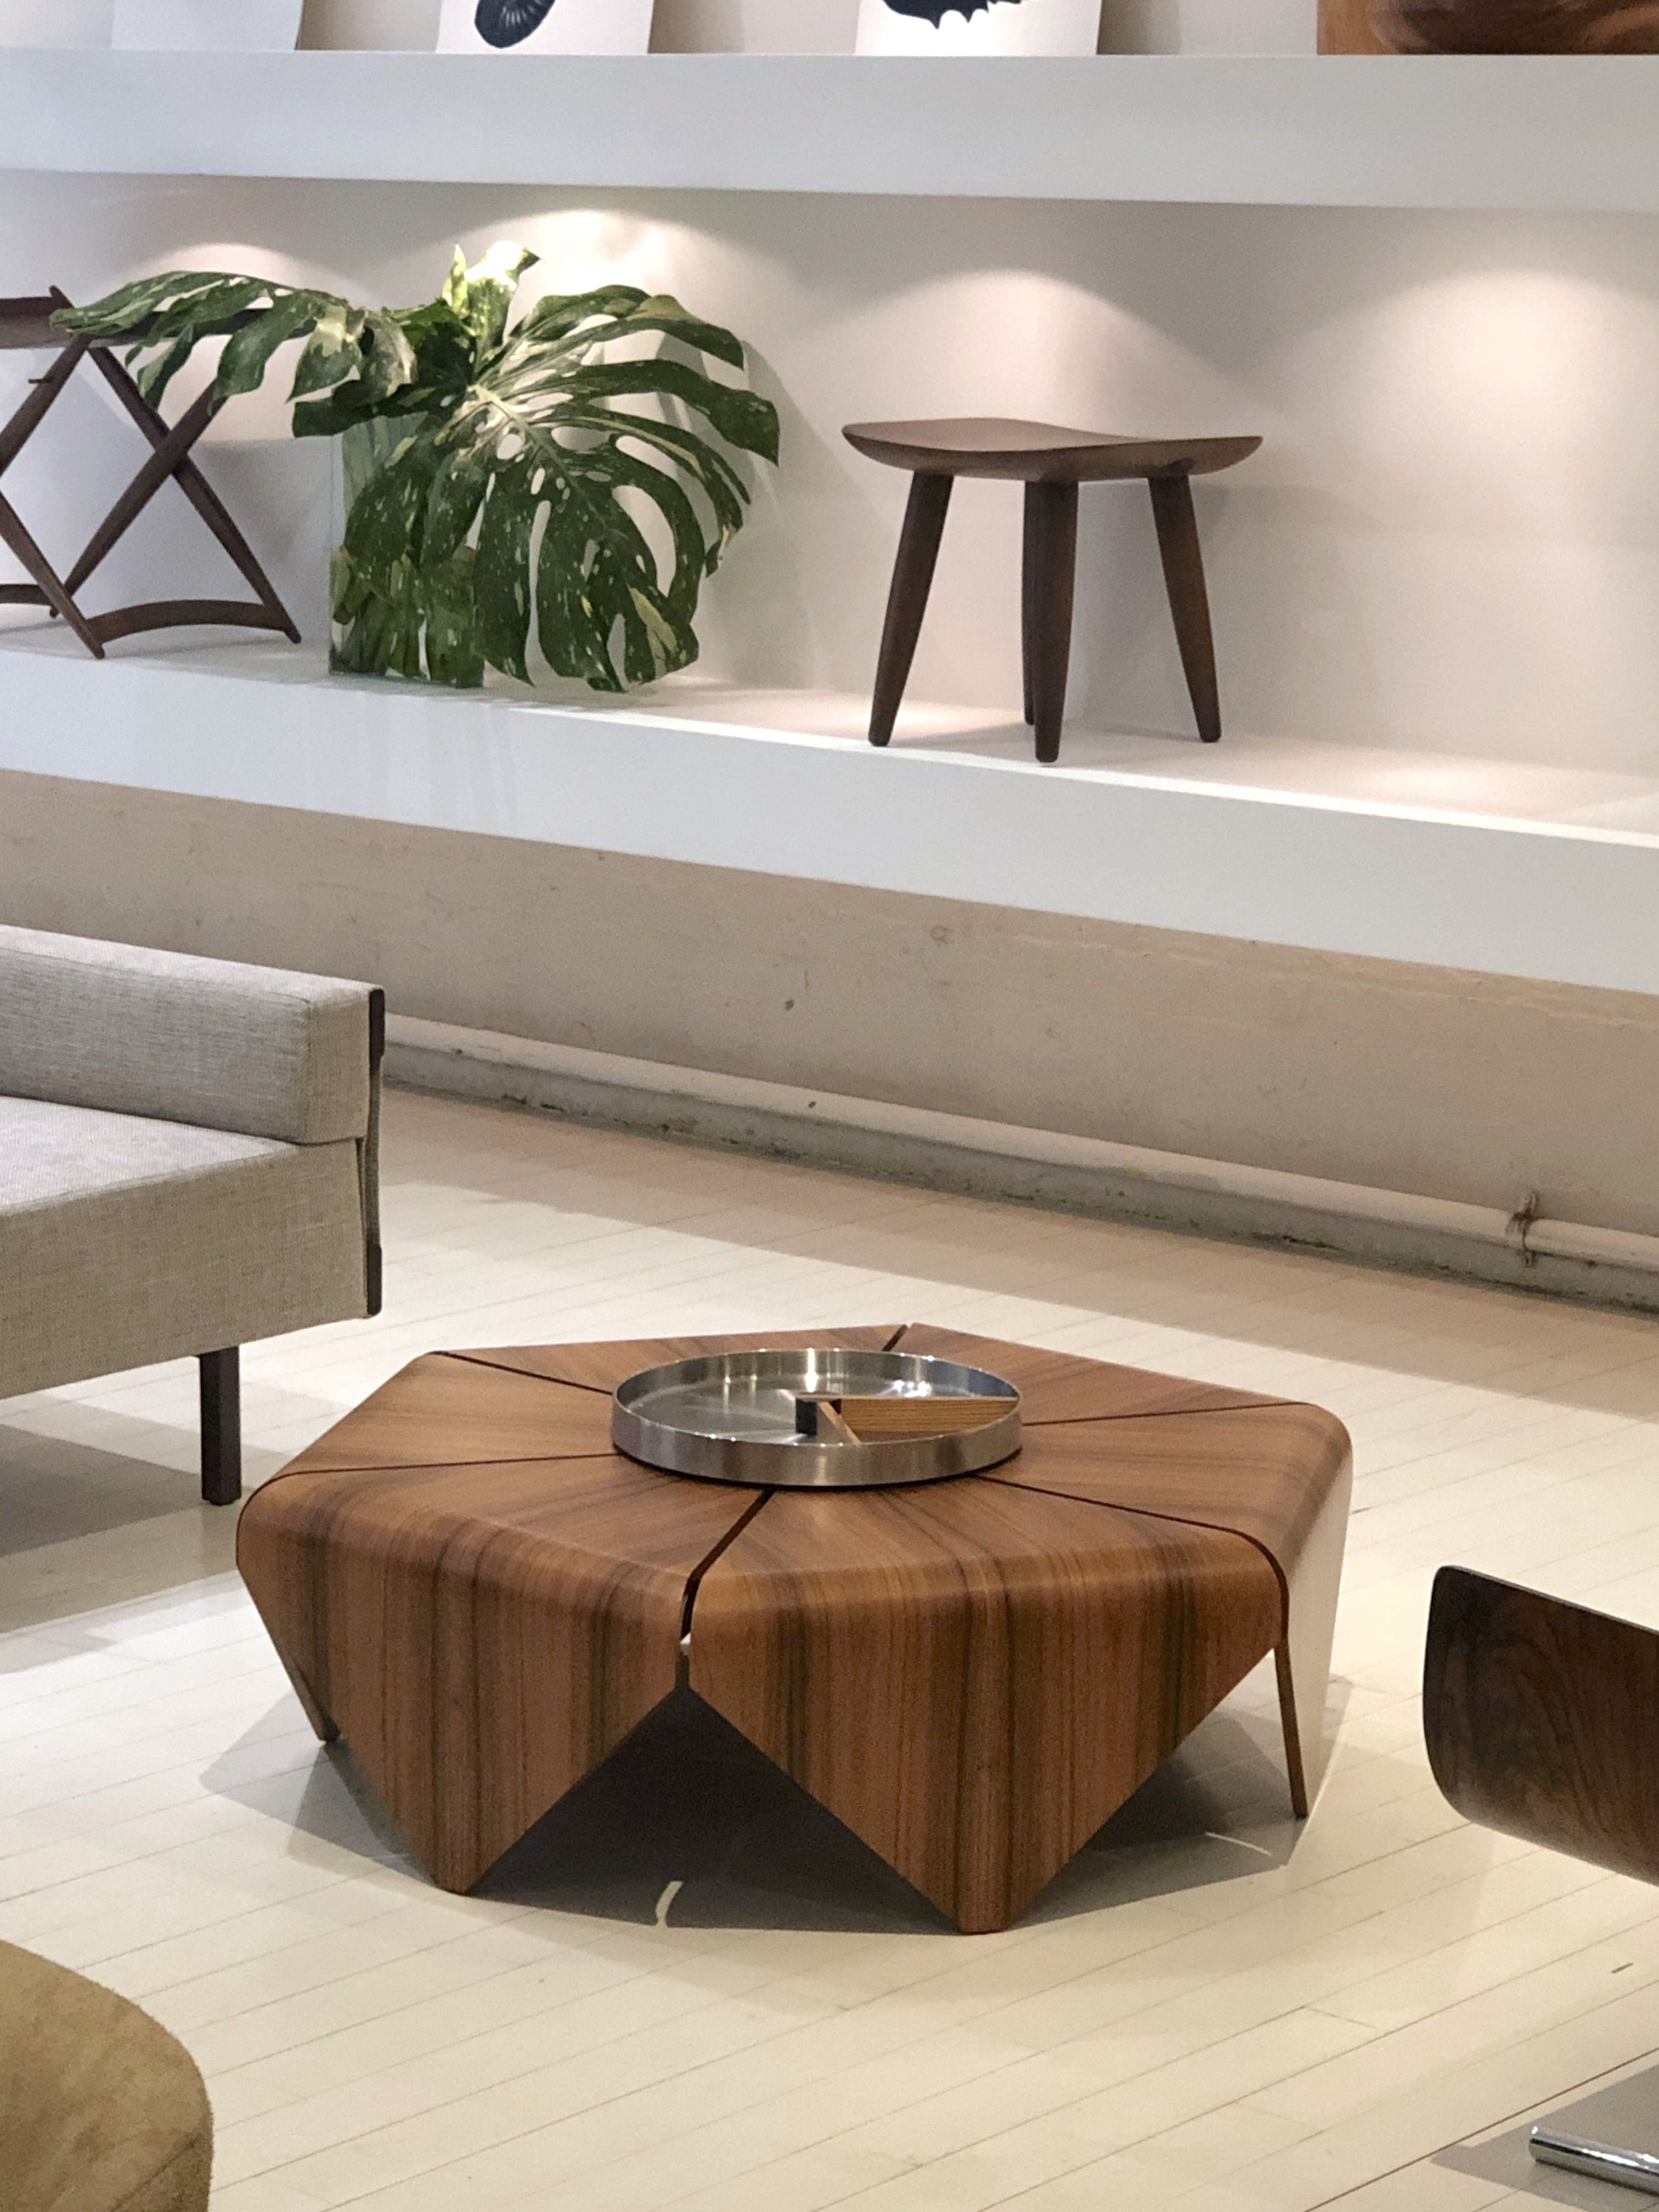 Petalas Coffee Table By Jorge Zalszupin Available At Espasso Midcentury Modern And Contemporary Brazilian Design Coffee Table Table Midcentury Modern [ 4032 x 3024 Pixel ]